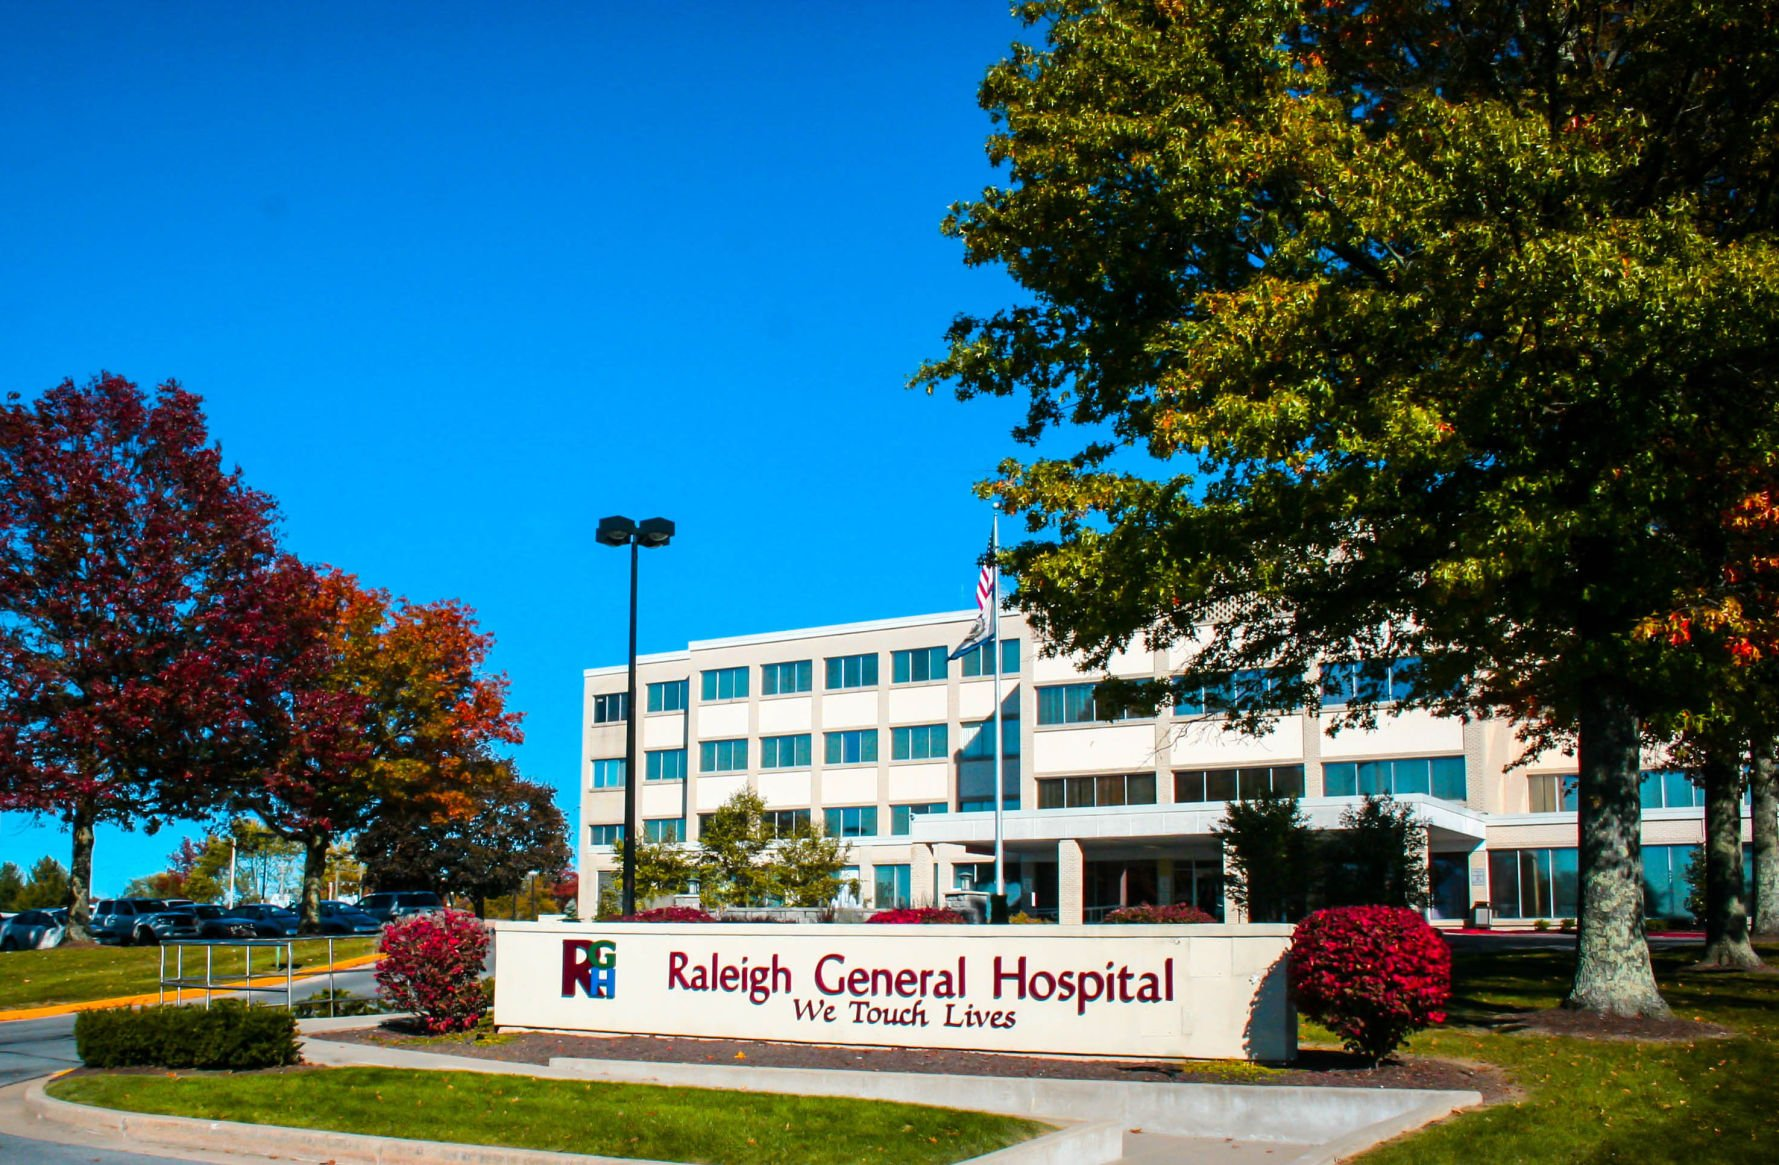 Raleigh General Hospital | Beckley, WV Hospital